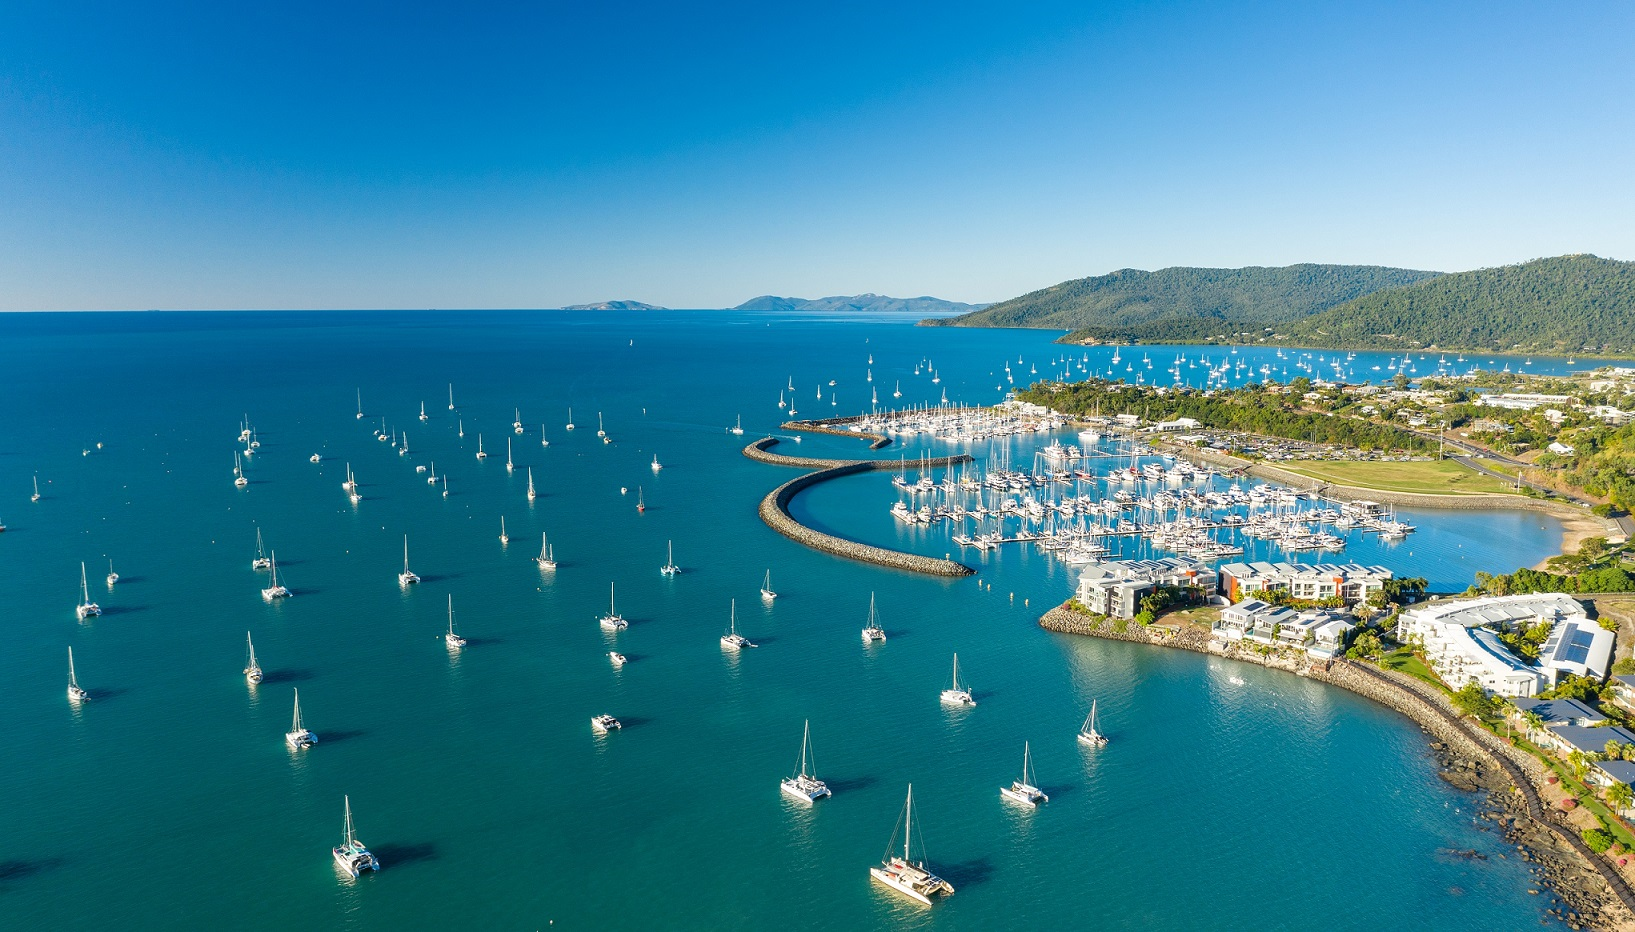 aerial shot of Coral Sea Marine resort in the Whitsundays